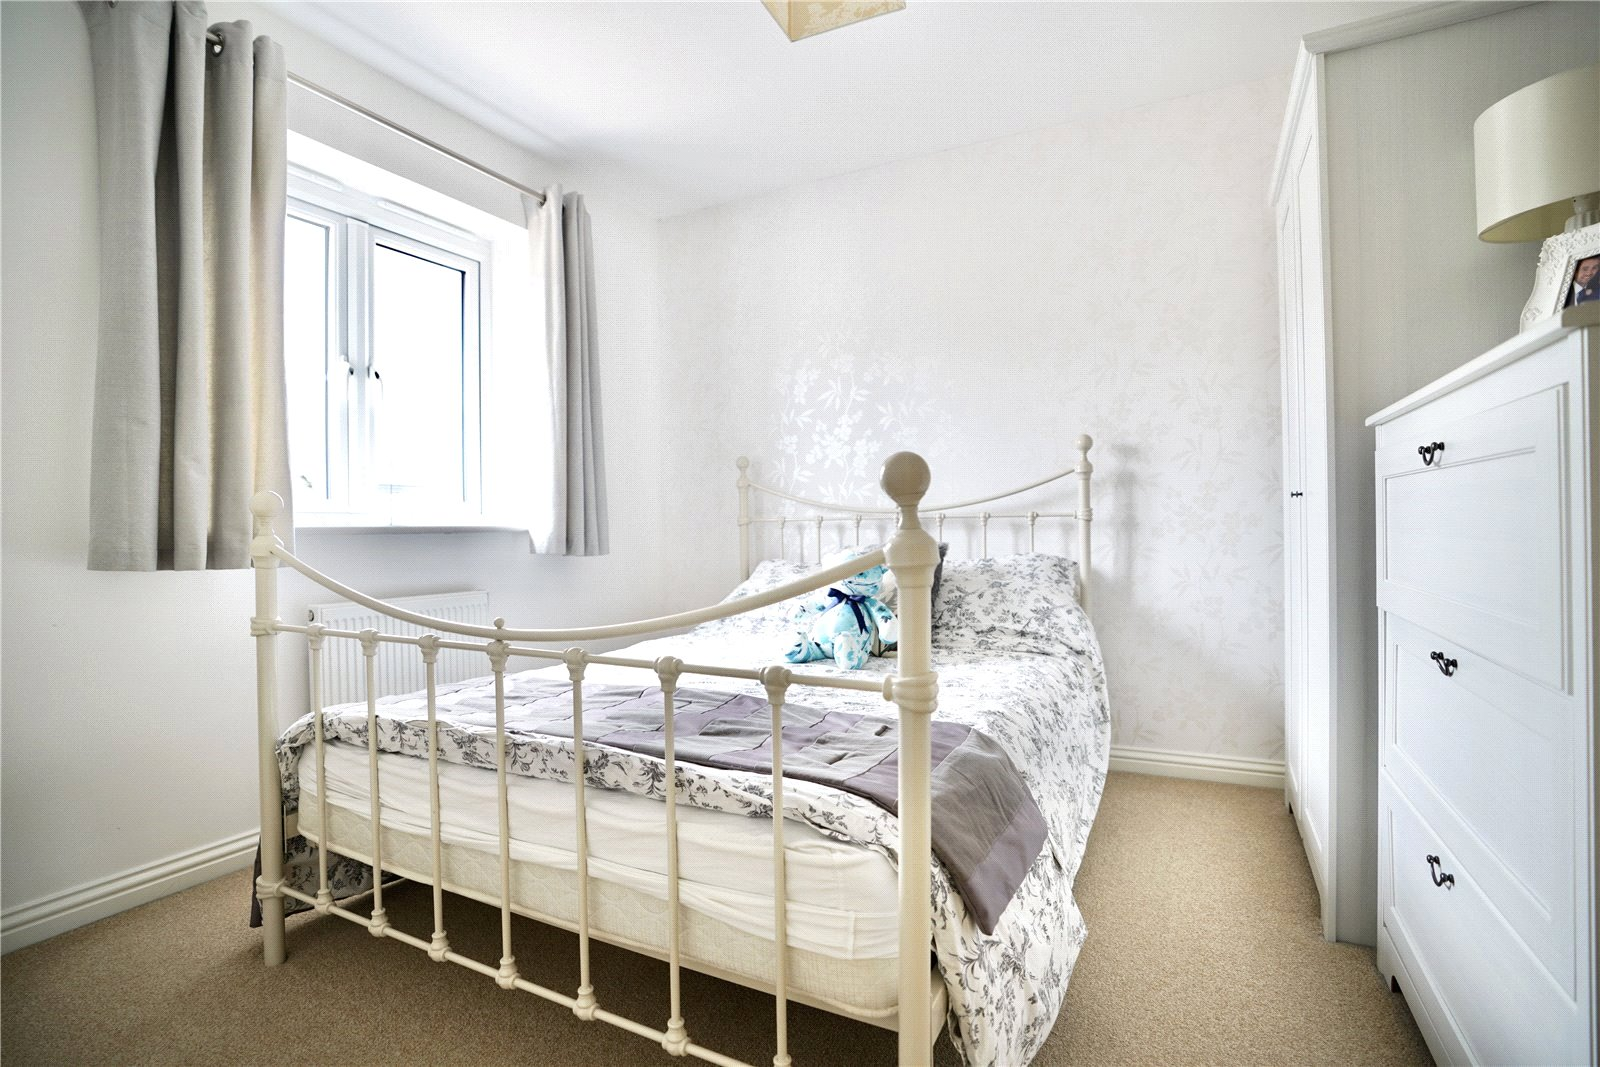 3 bed house for sale in St. Ives, PE27 5DL 7